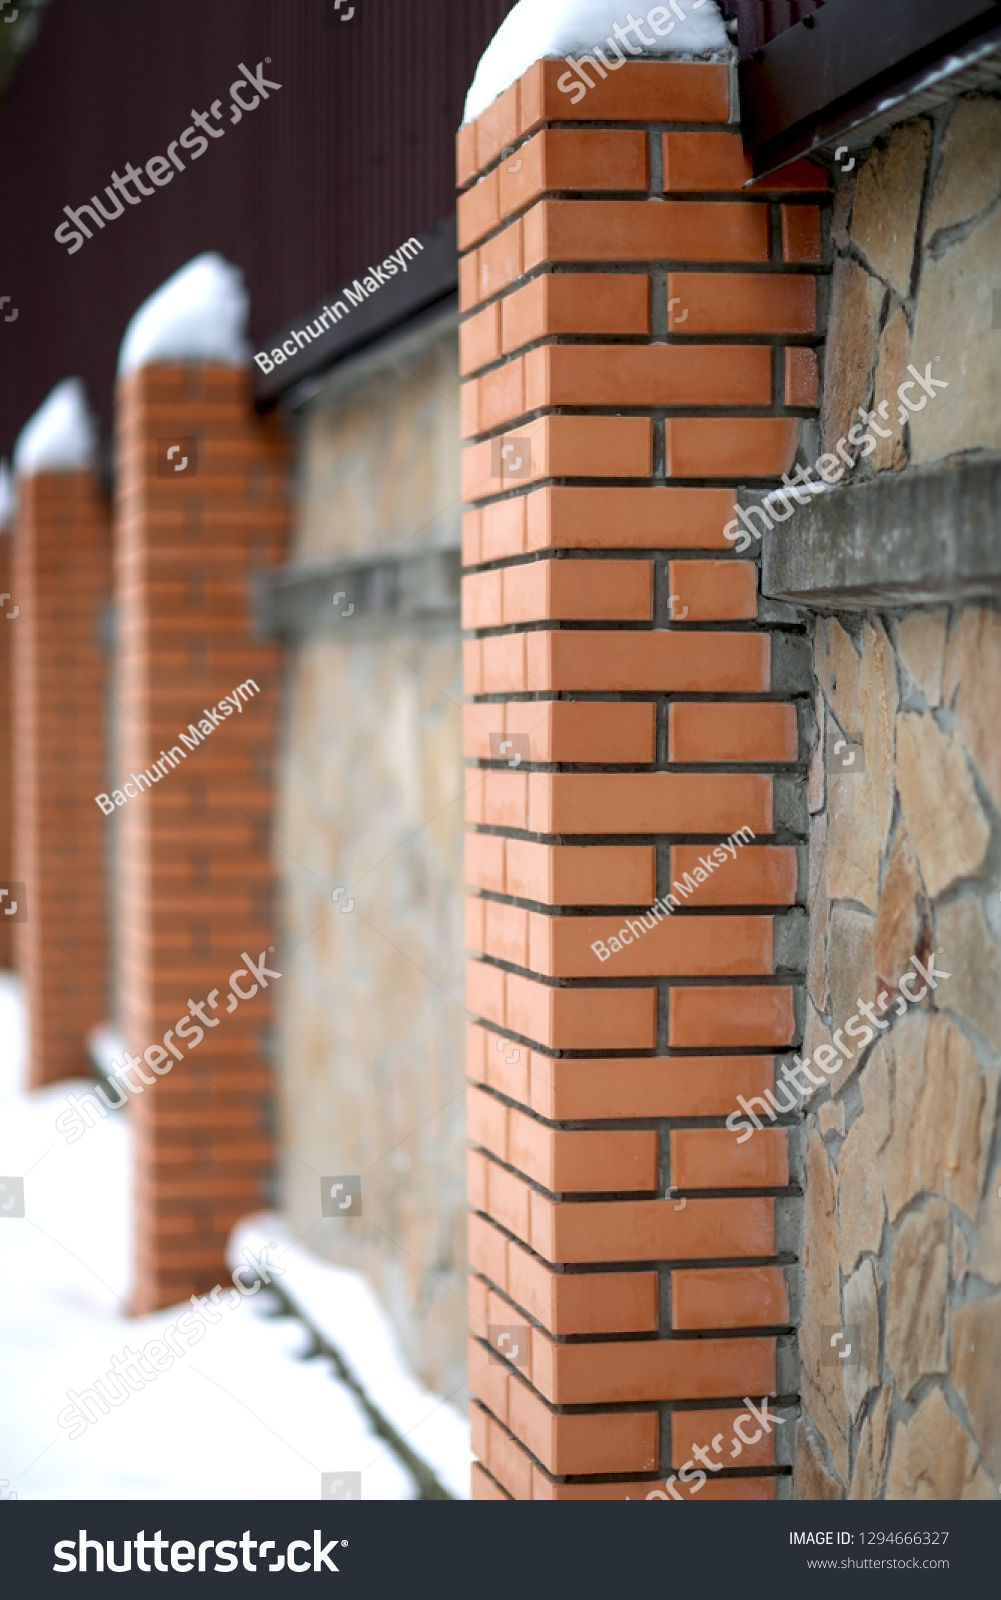 Construction And Materials Stone Wall House Industry Security